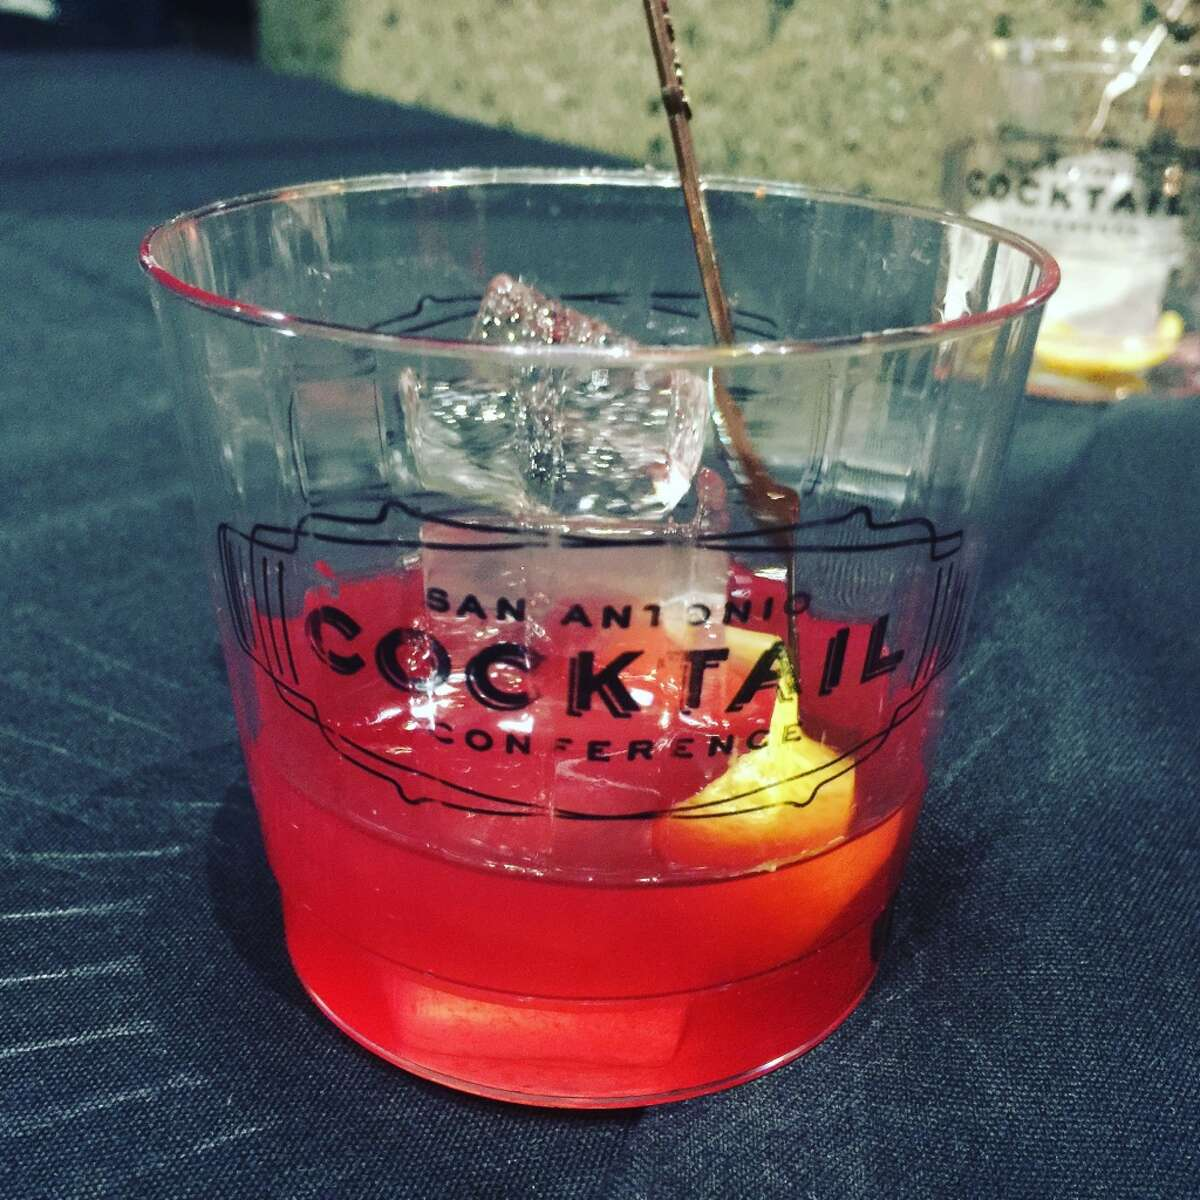 The Palm station at the Houston St. Stroll had Woodford Reserve bourbon, one of my faves. This was the Winter's Punch, with Woodford, pomegranate and lemon juice. Delish, but quite the booze bomb.